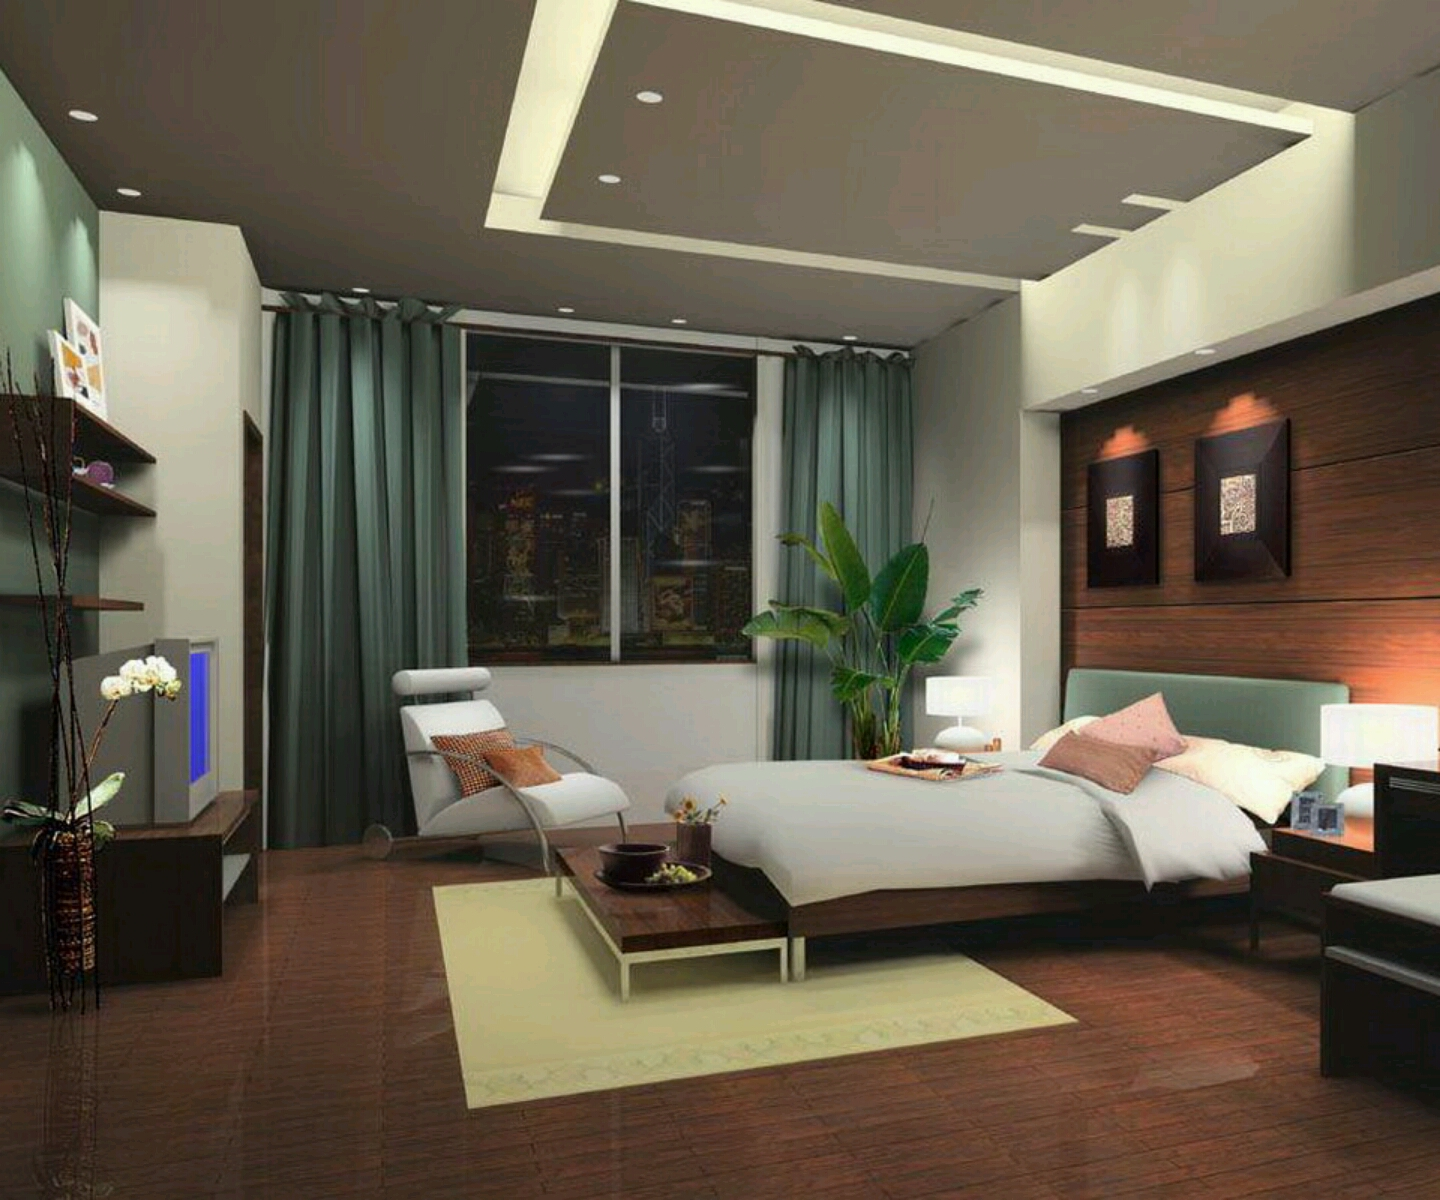 New home designs latest modern bedrooms designs best ideas for Best bed designs images